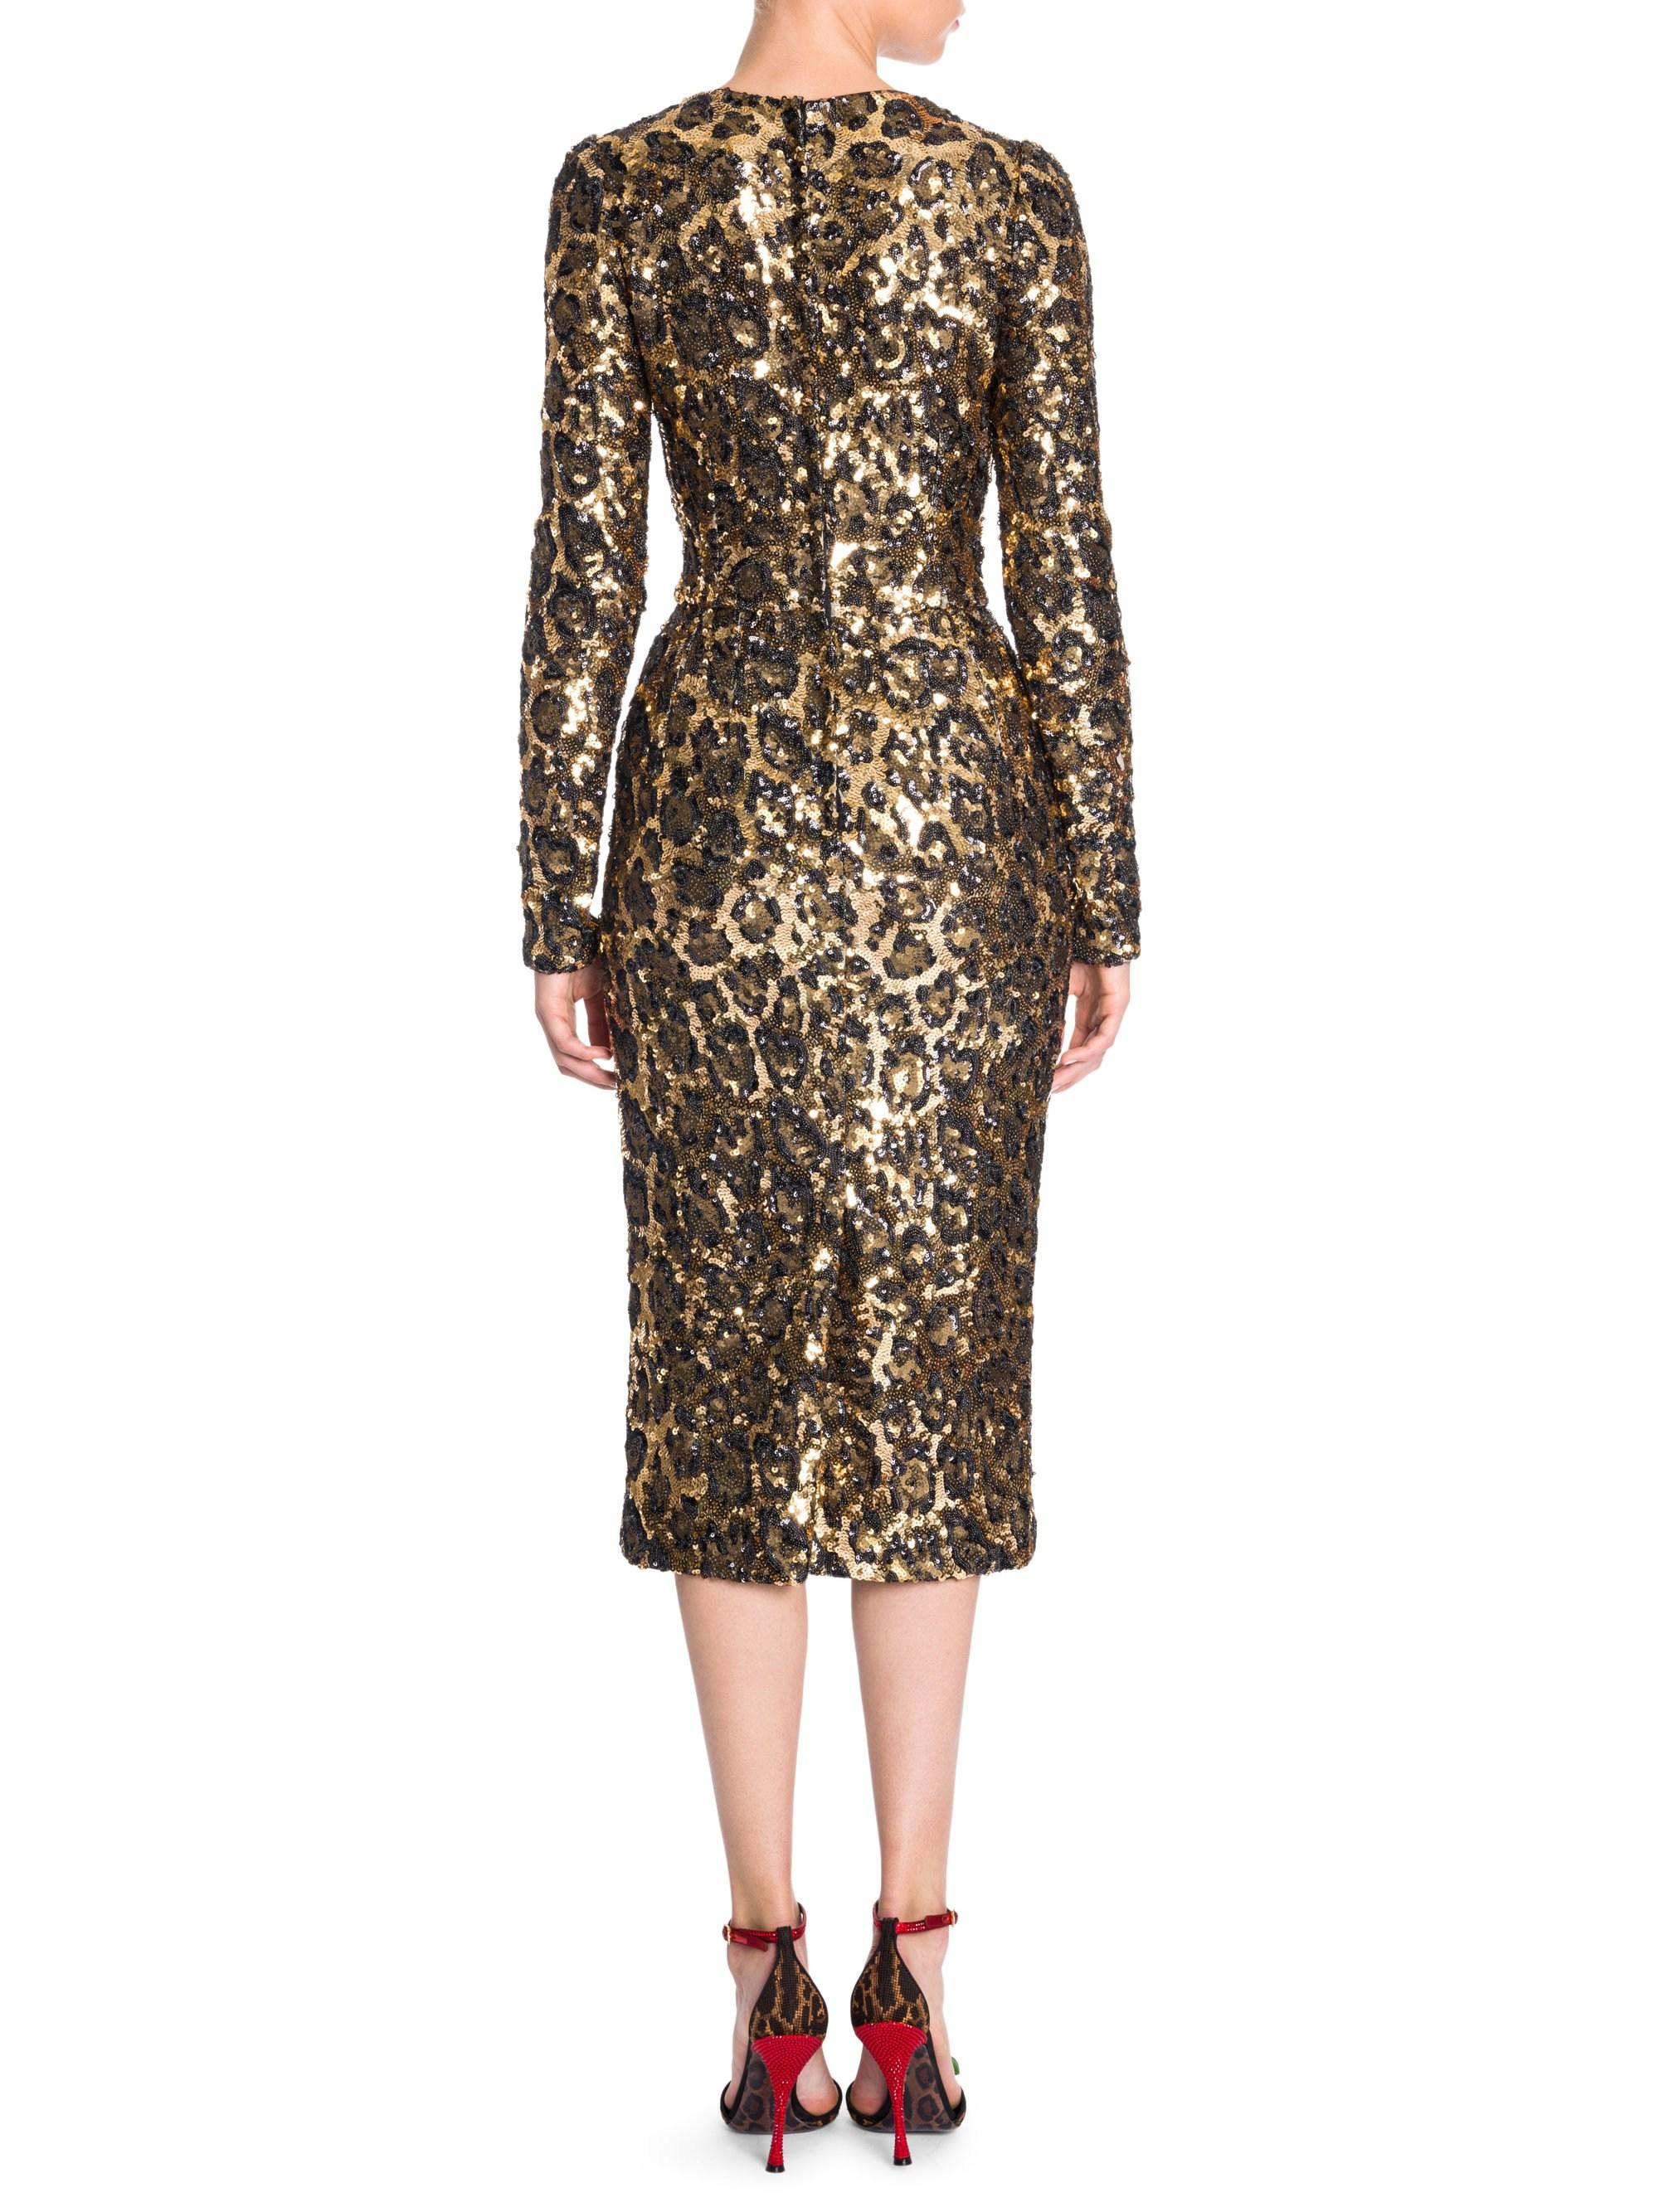 Lyst - Dolce   Gabbana Women s Leopard Sequin Long Sleeve Dress - Leo -  Size 48 (12) c76fbeb92